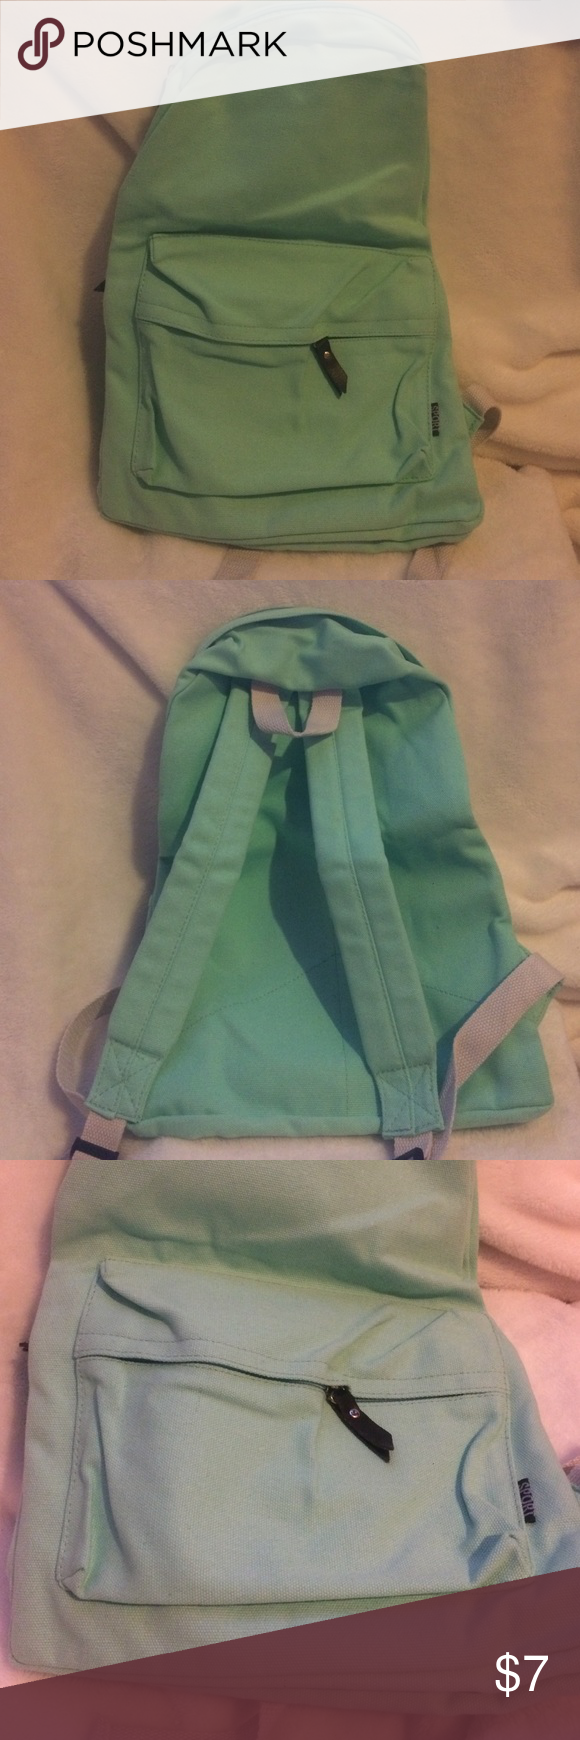 "Canvas backpack. New, never used. No tags. This is a light seafoam green very soft canvas backpack. Had leather zipper ties and did white straps. Ordered online- no brand listed. Just ended up being a little smaller than we needed. The backpack measures appx. 17""(height) by 13"" (width) Other"